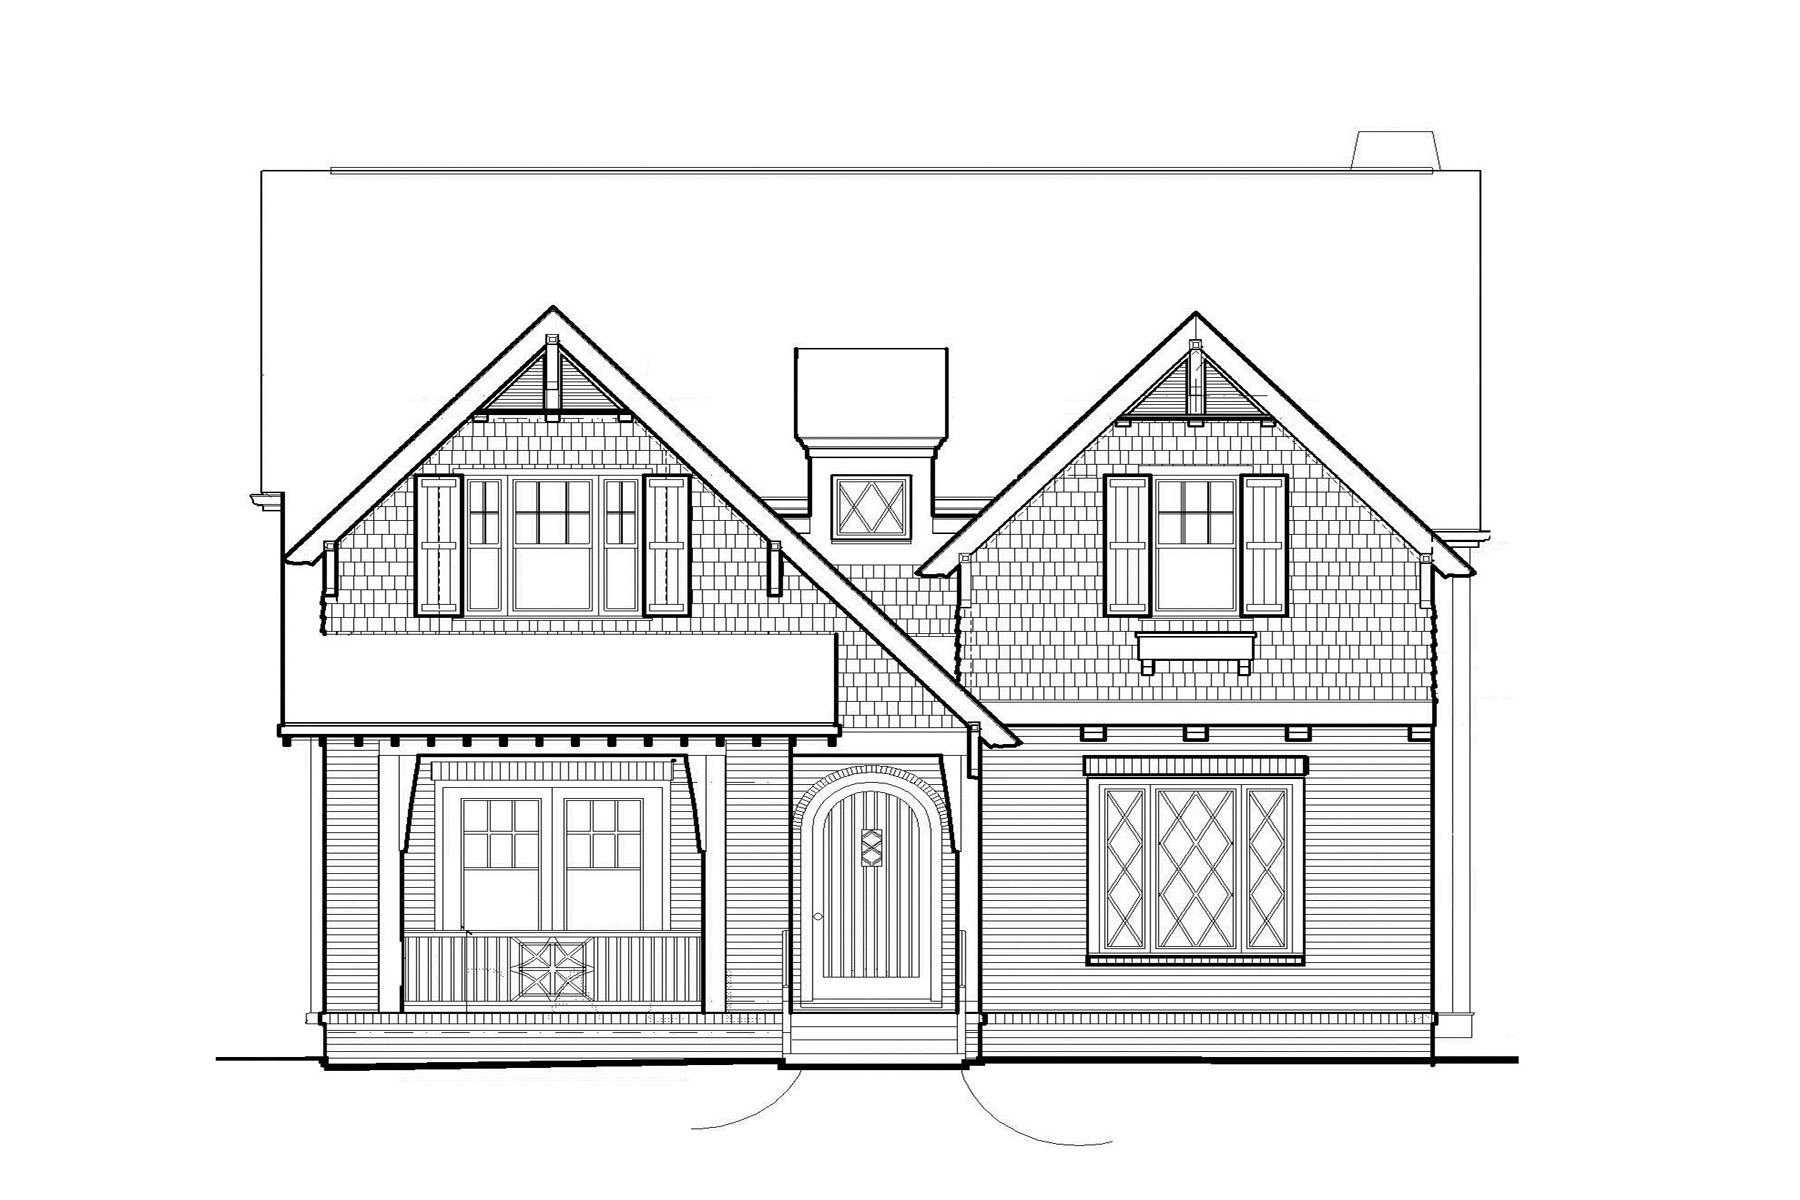 Single Family Home for Sale at Impressive New Construction Home In Garden Hills 2919 Lookout Place NE Garden Hills, Atlanta, Georgia 30305 United States